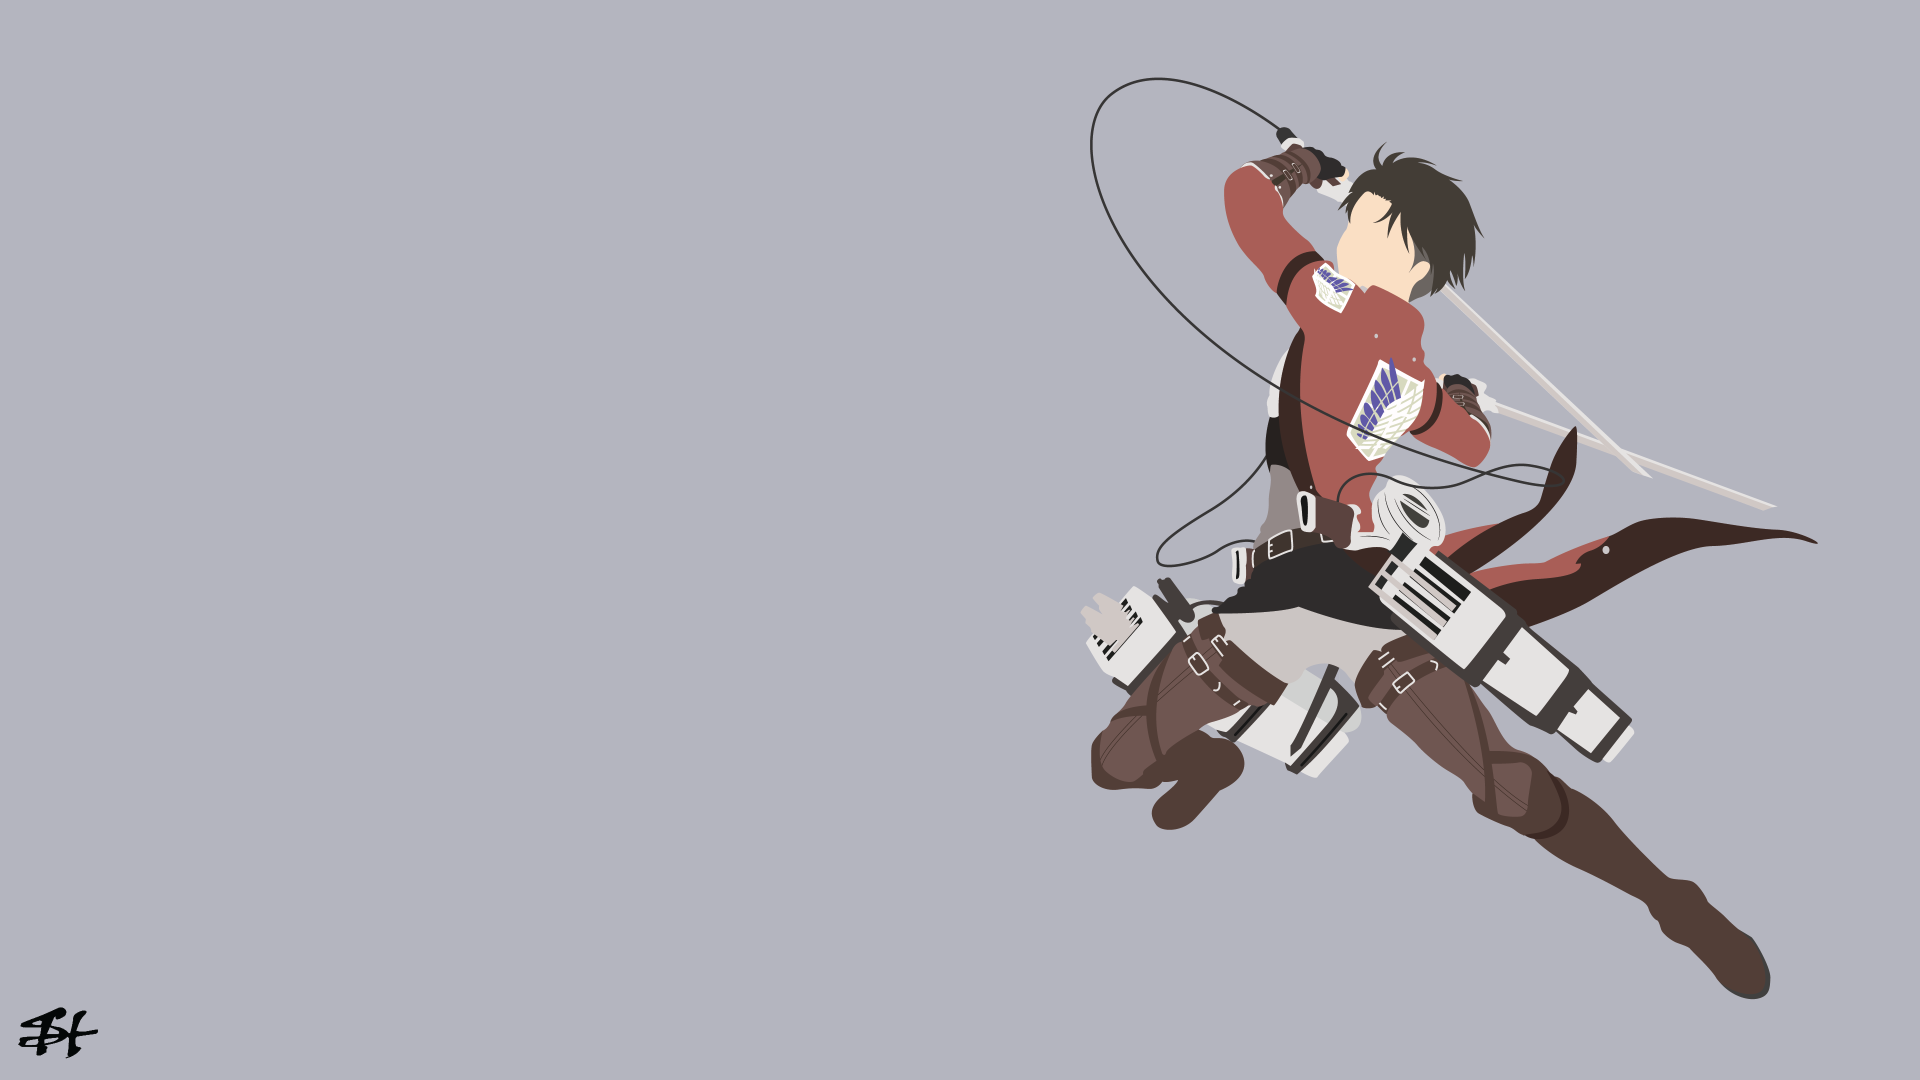 Anime Attack On Titan Levi Ackerman Wallpaper Minimalist Wallpaper Anime Computer Wallpaper Hd Anime Wallpapers